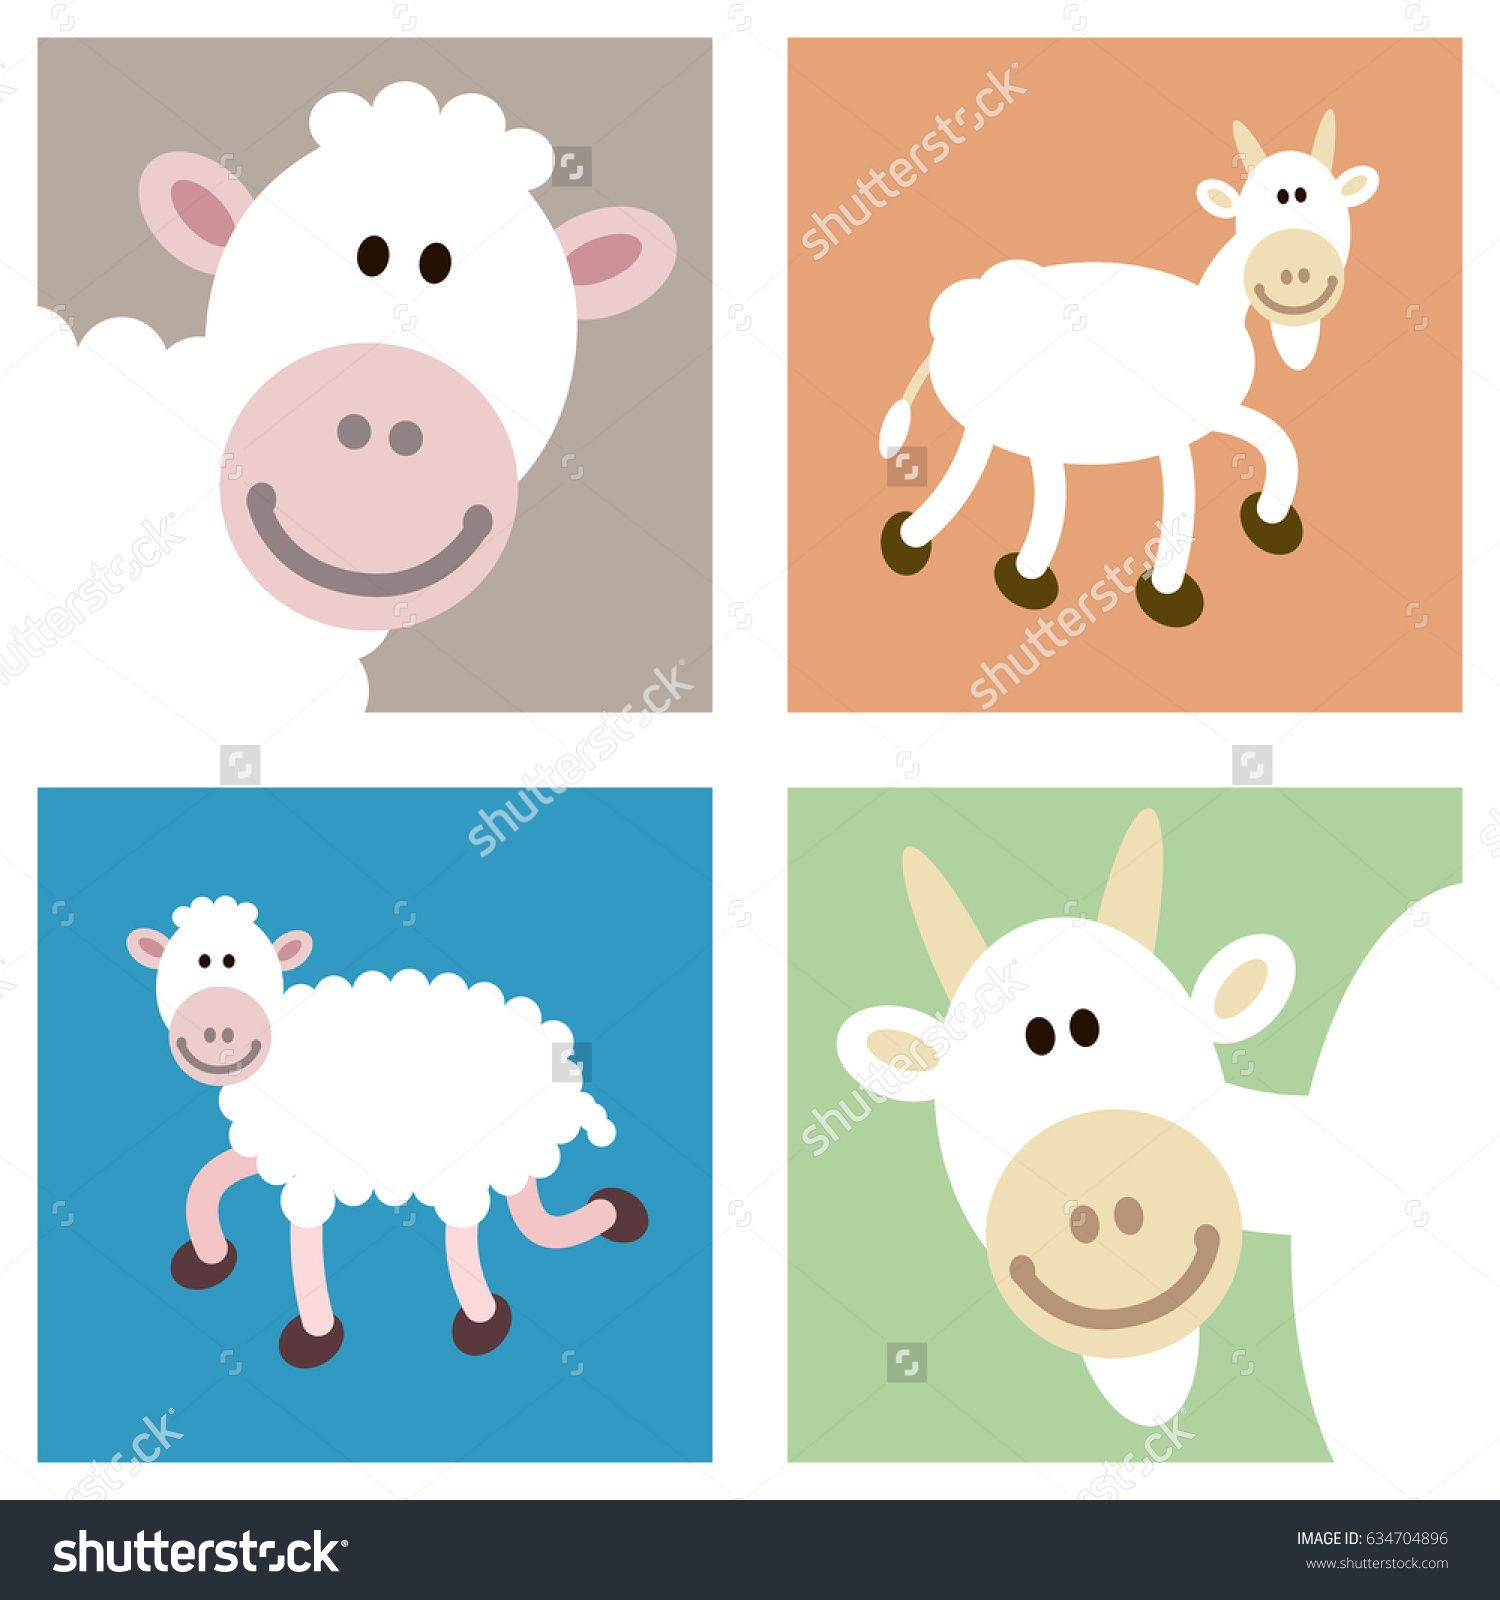 smiley face happy goat and sheep illustrations in various cutouts